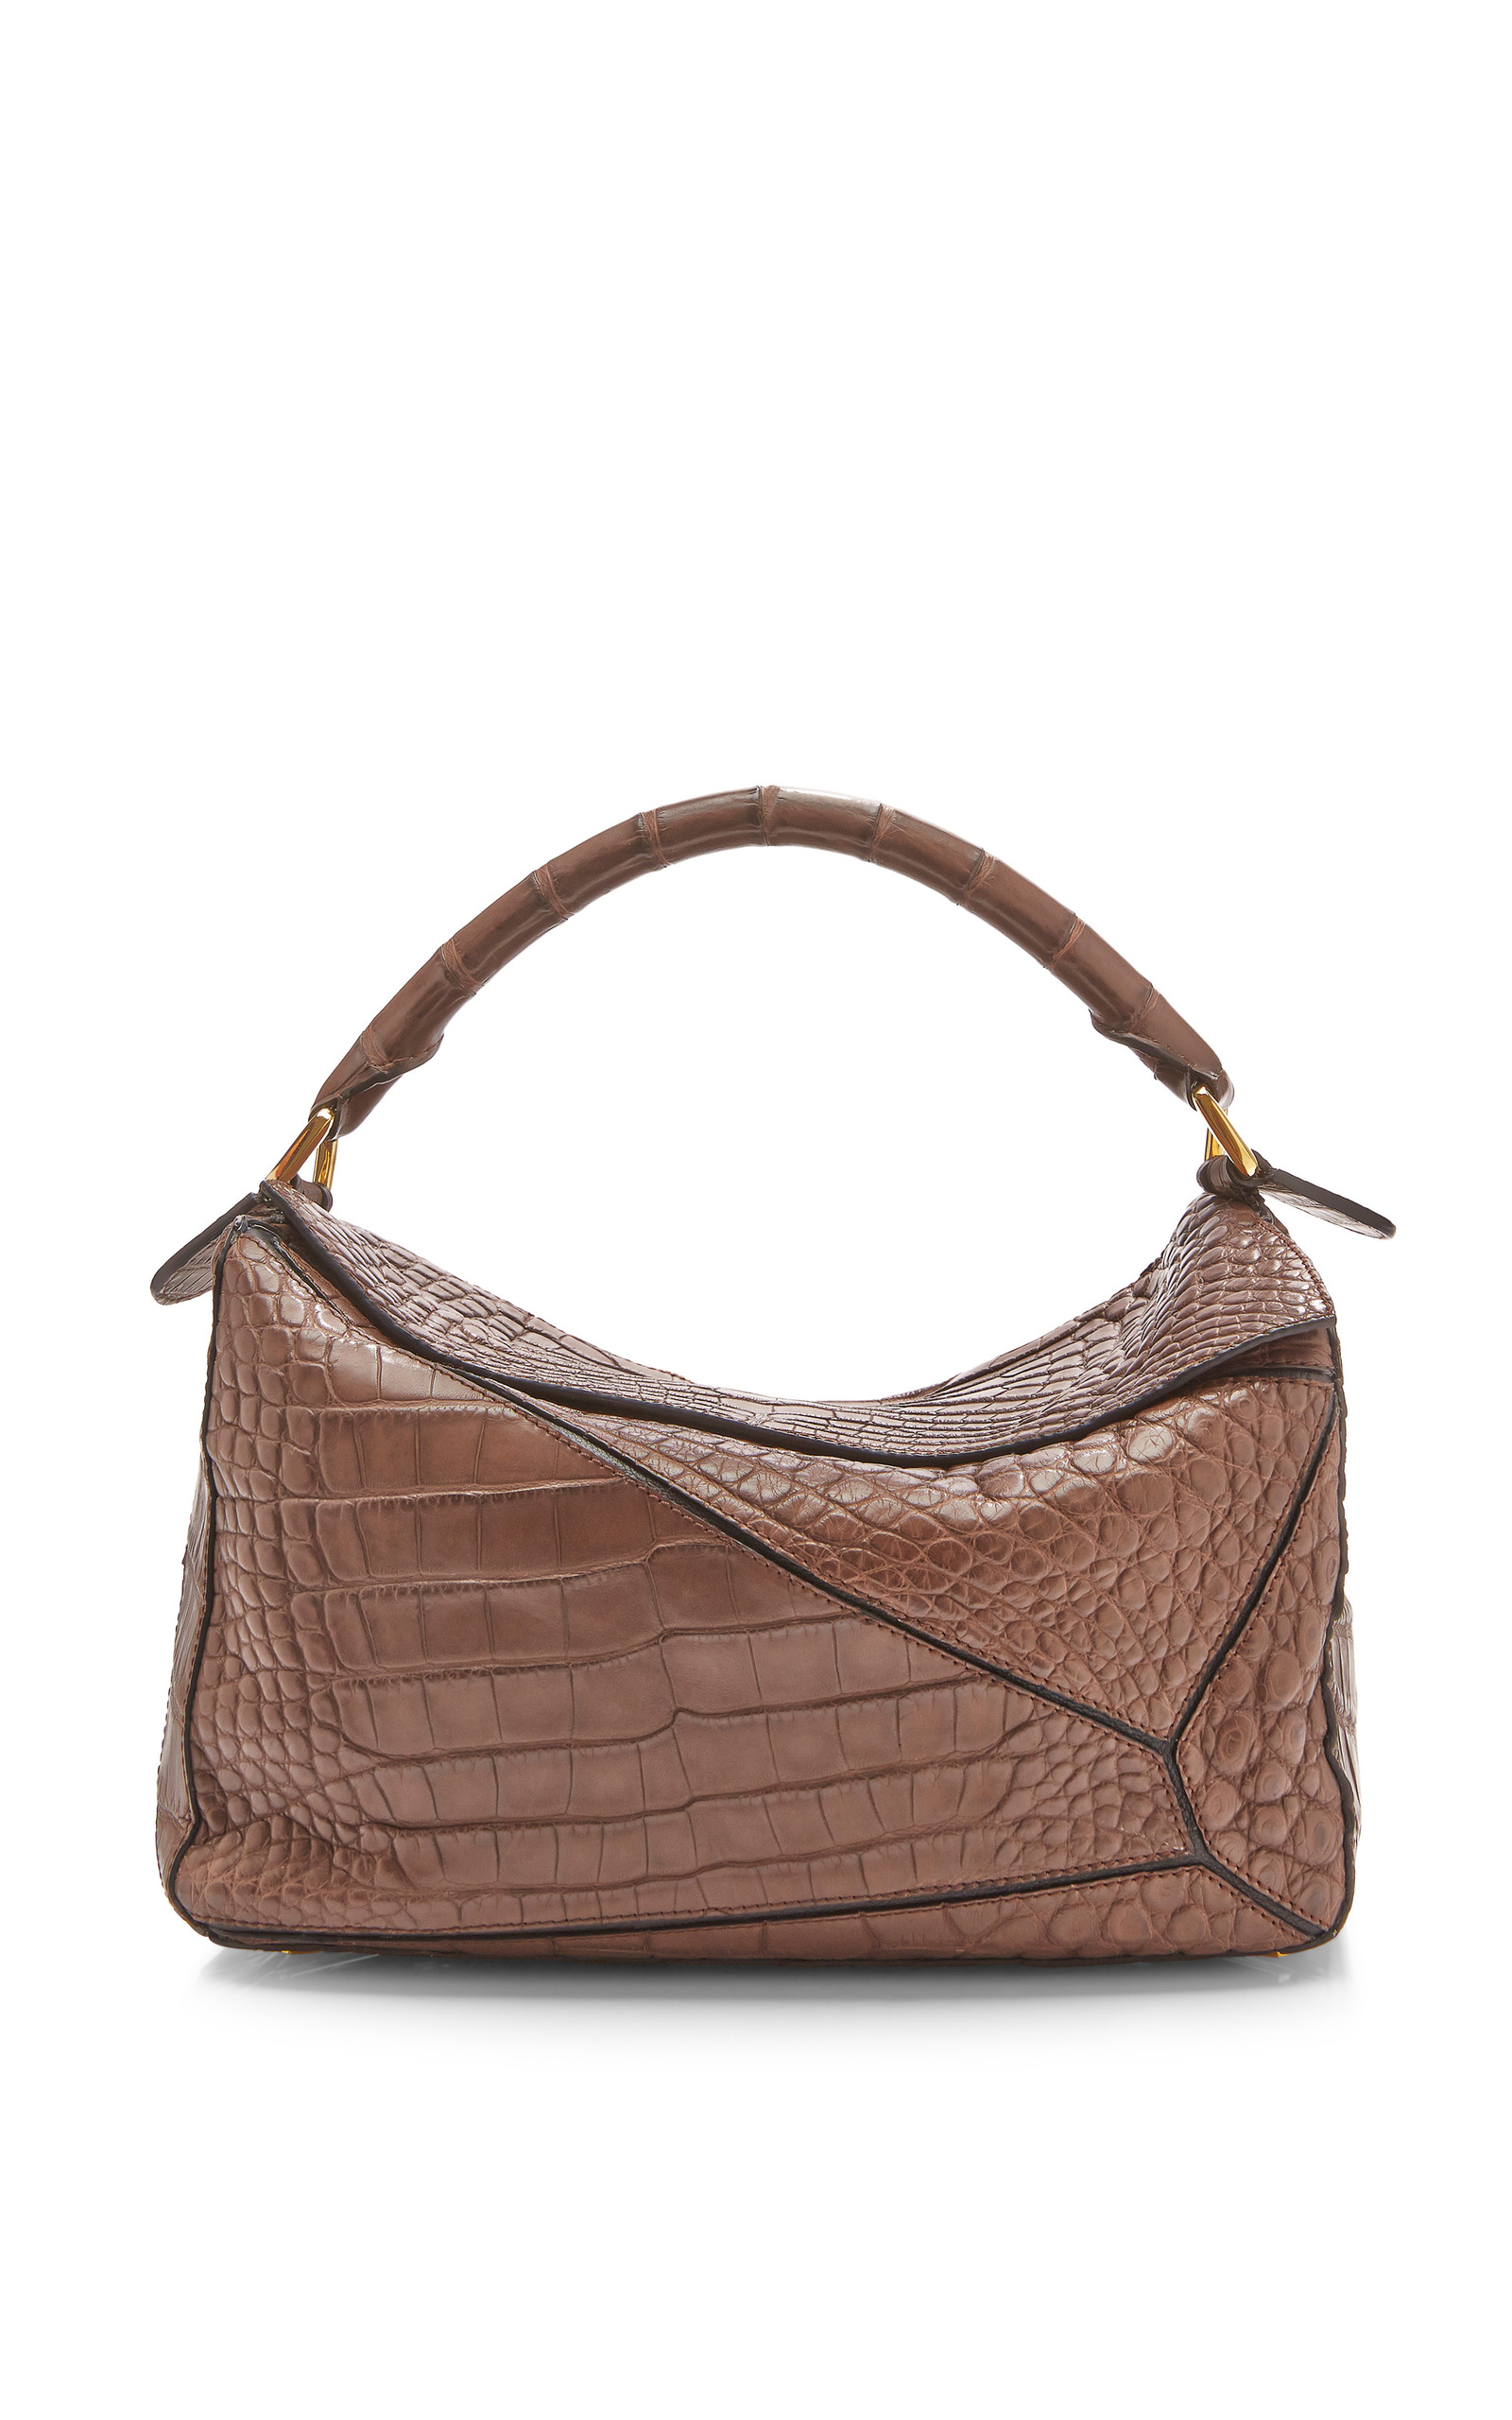 Really Cheap Price Loewe Crocodile Handbag Cheap Price Buy Discount Cheap Great Deals 2018 New Best Store To Get Online sxUFJ